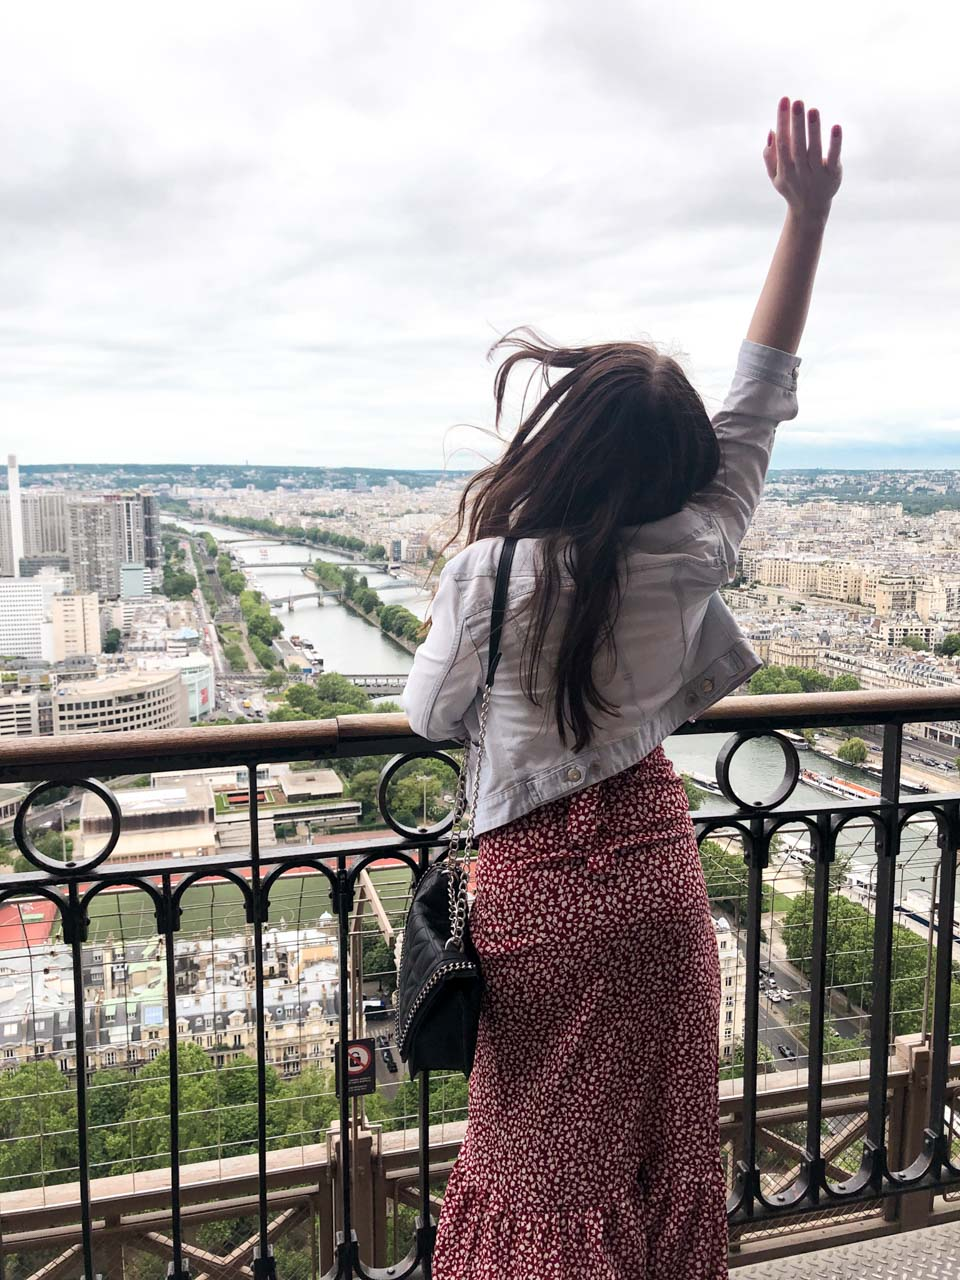 A dark-haired woman in a light denim jacket and a white and red dress with her back turned to the camera throwing her right hand up in the air as she is standing on the observation deck on the 2nd floor of the Eiffel Tower in Paris, France